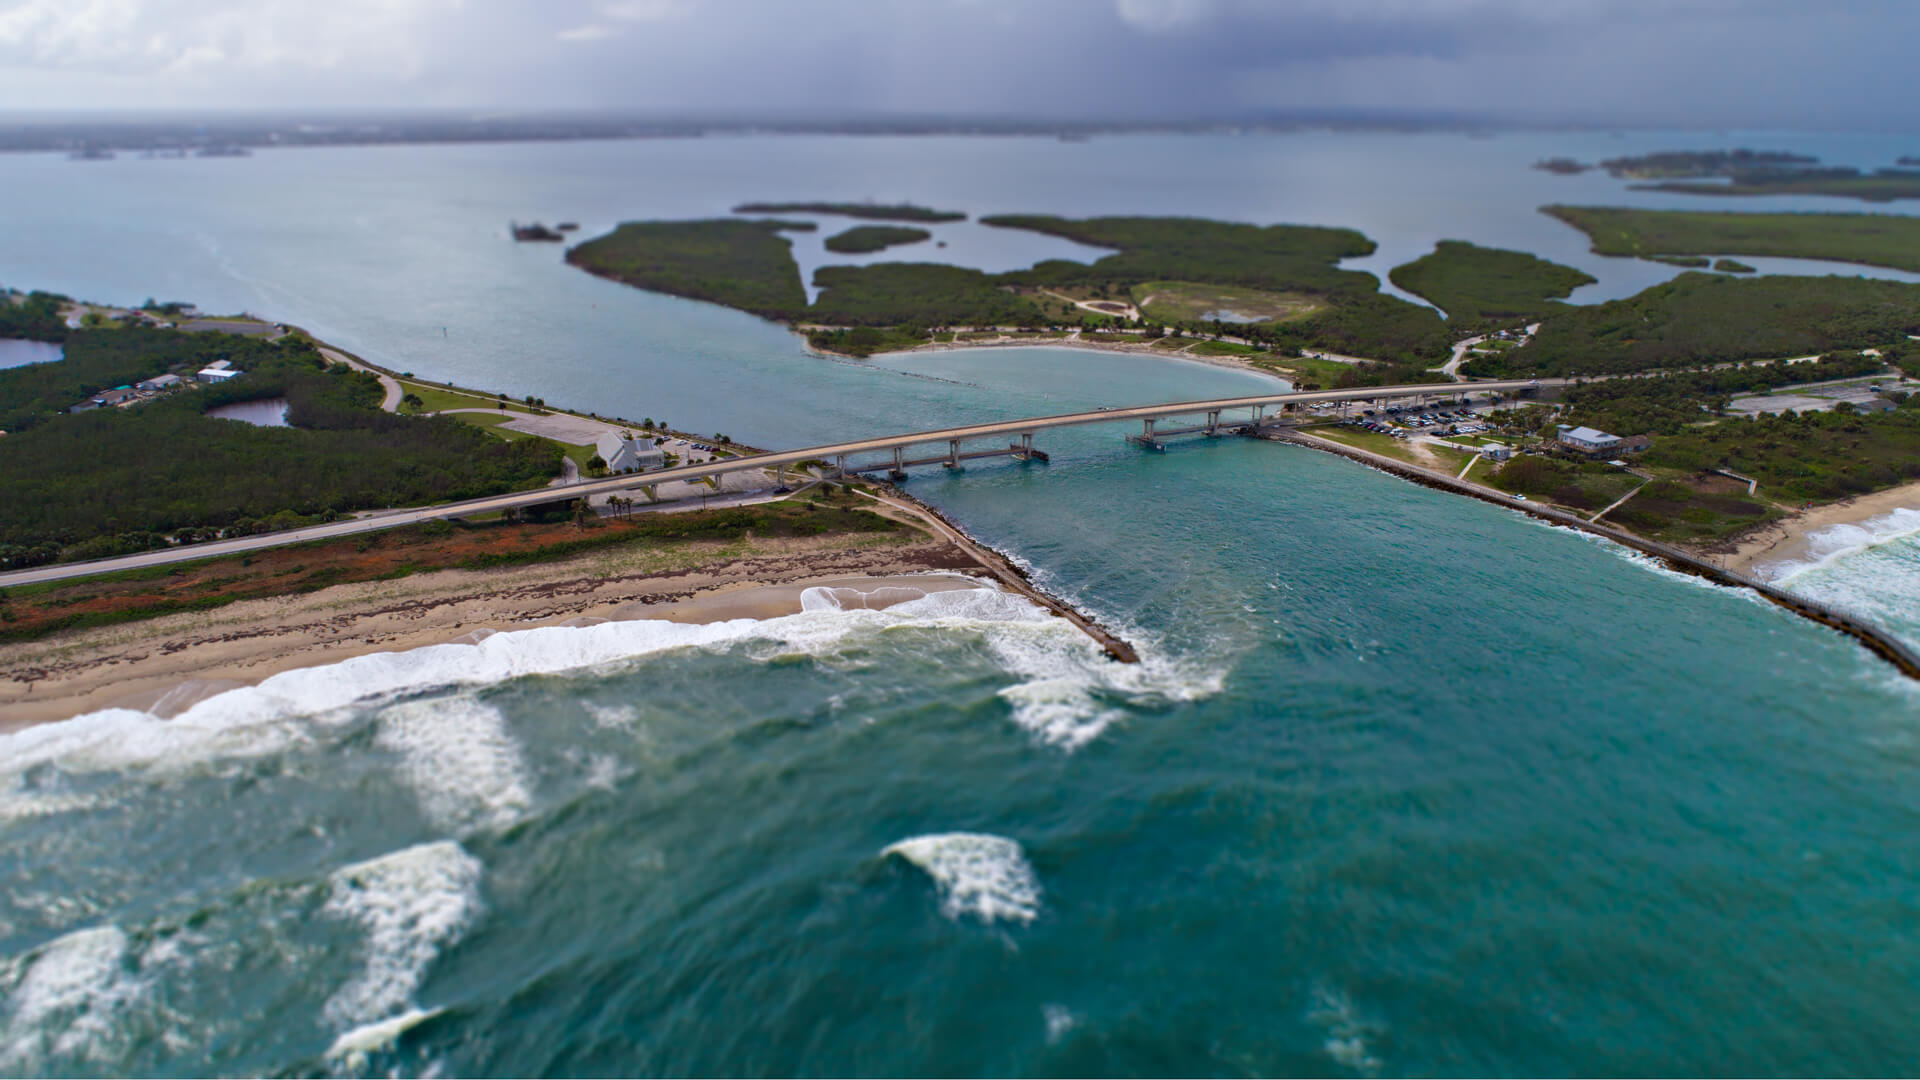 Aerial photo of Sebastian Inlet State Park